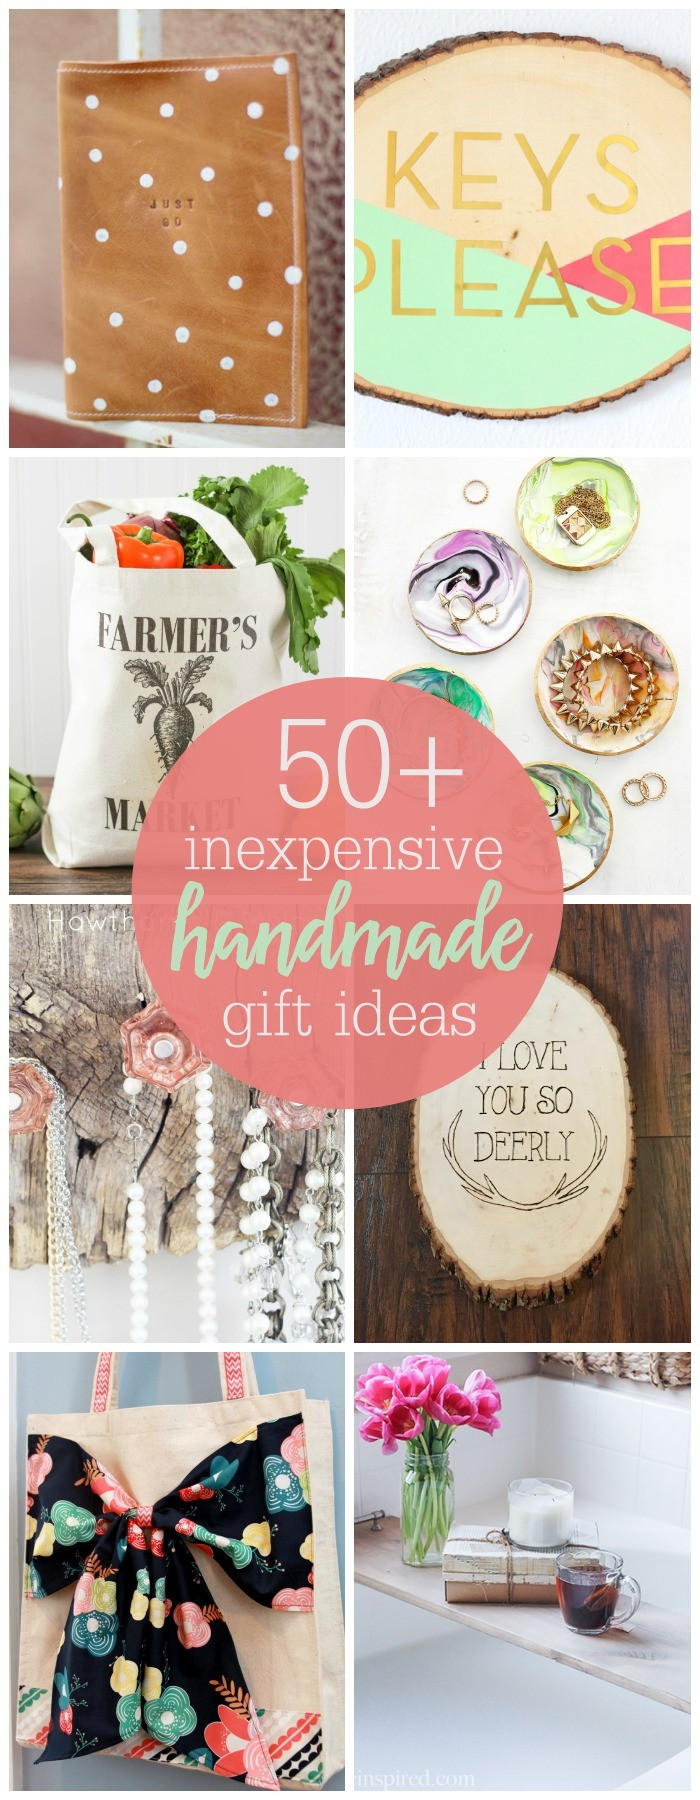 Best ideas about DIY Gifts For Family . Save or Pin Inexpensive Handmade Gift Ideas Now.